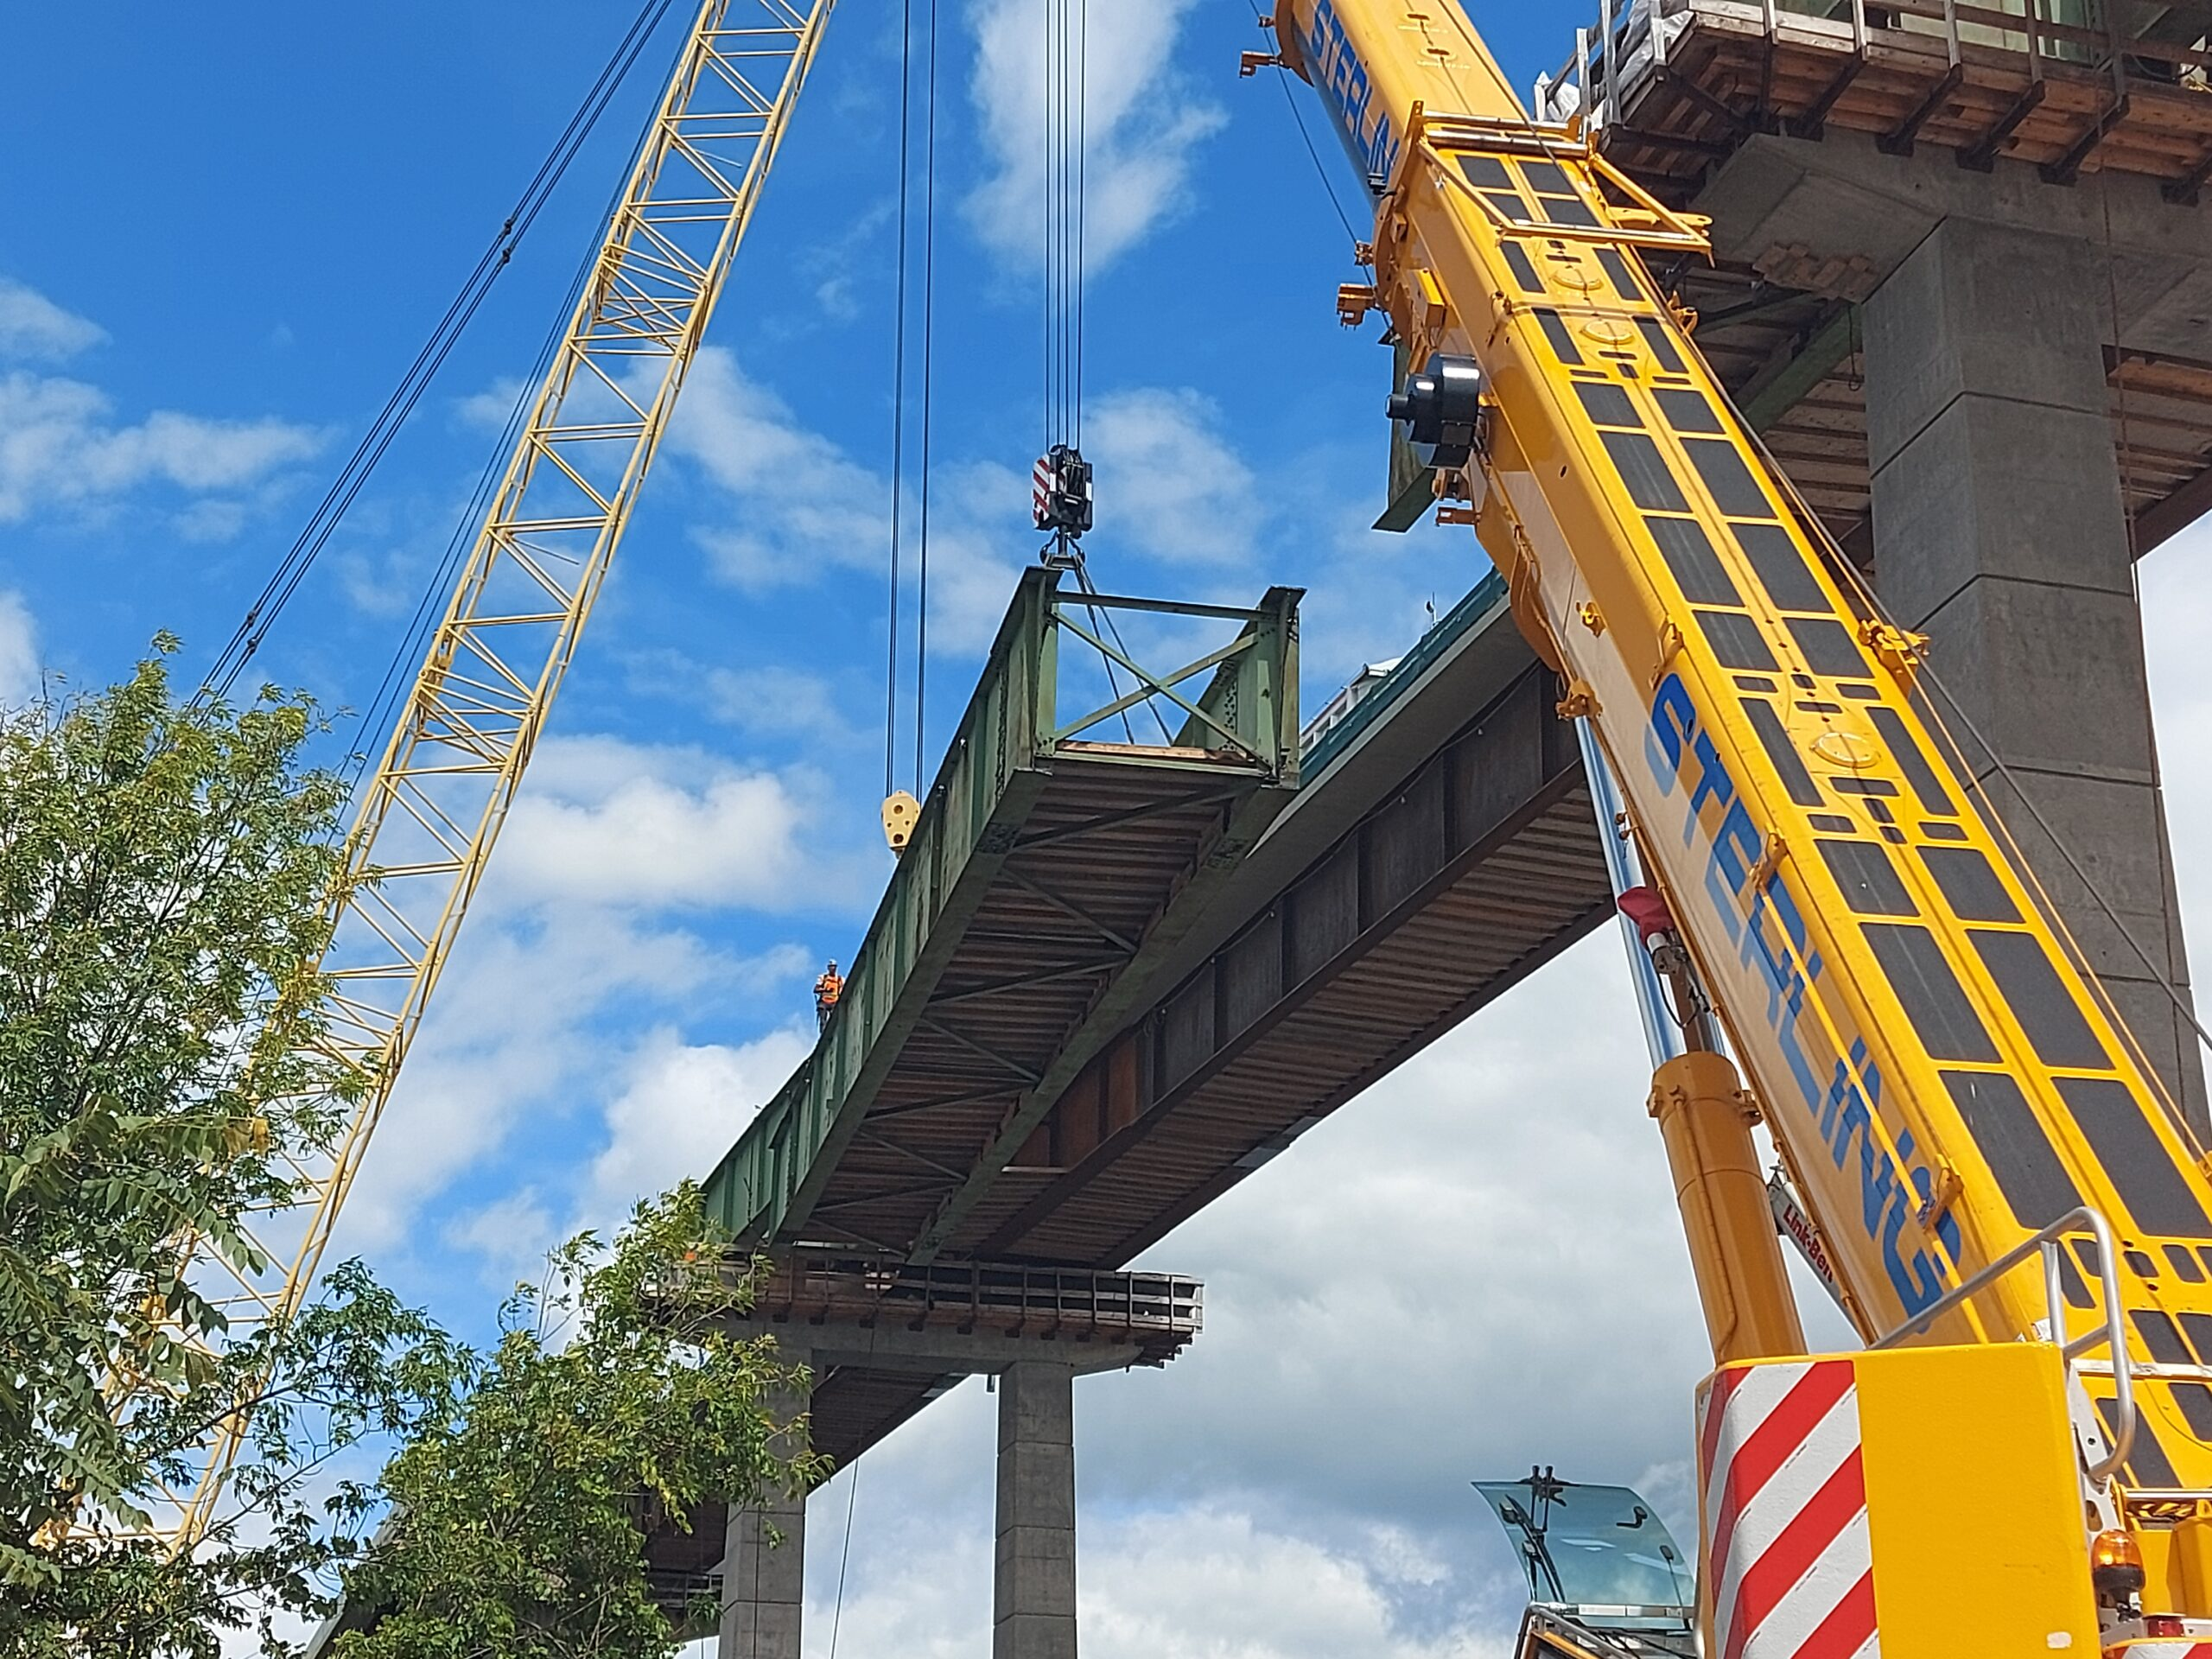 200 and 300-ton cranes lowering the drop-in girder